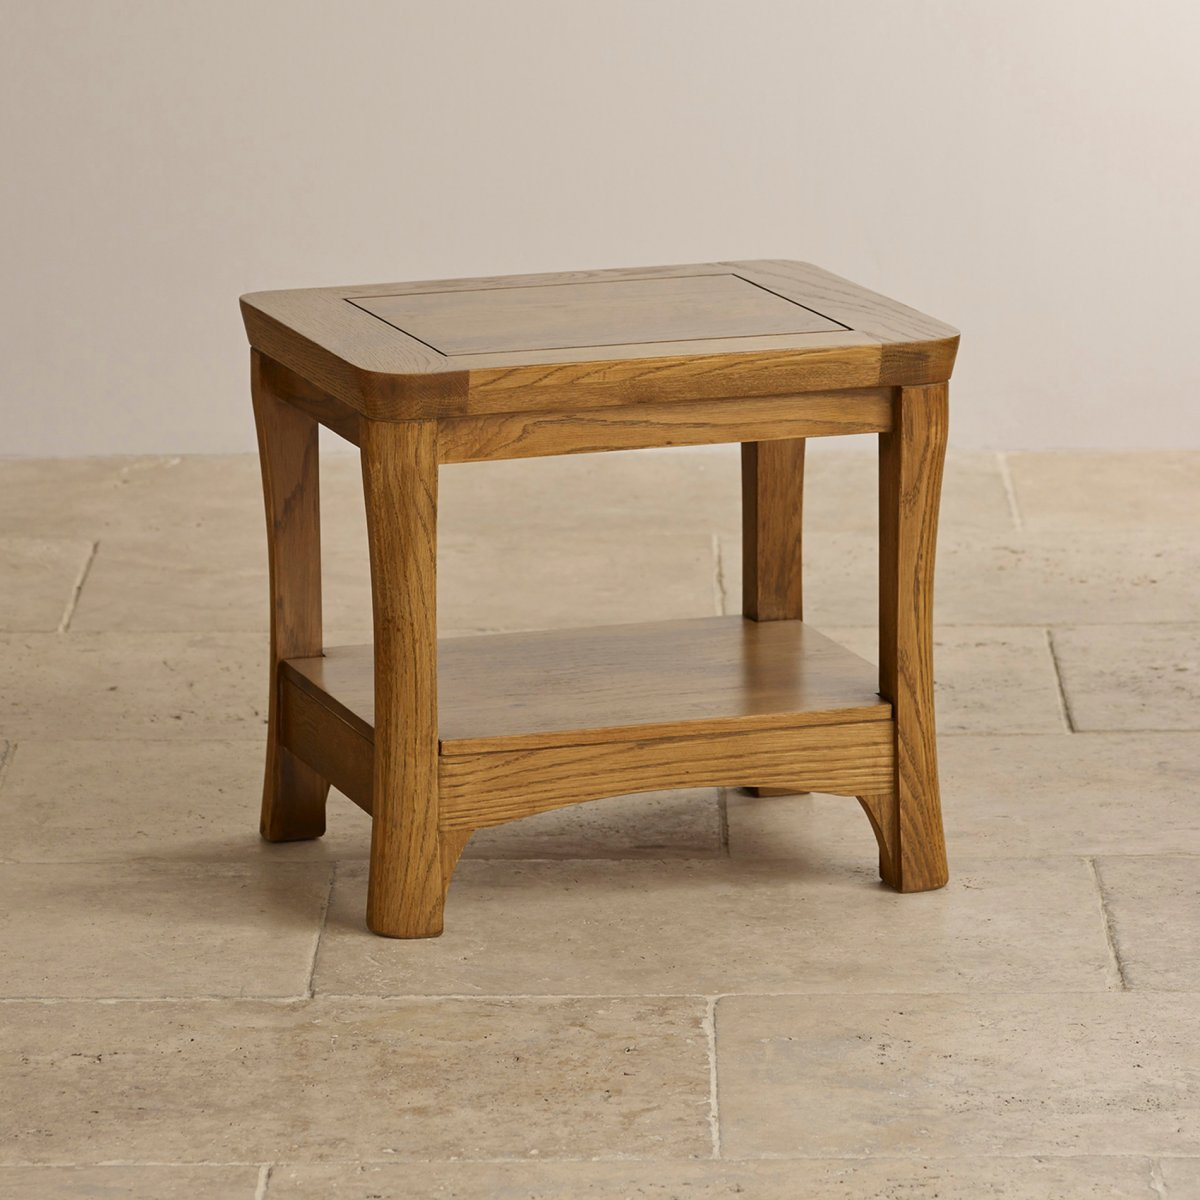 Orrick Lamp Table in Rustic Solid Oak